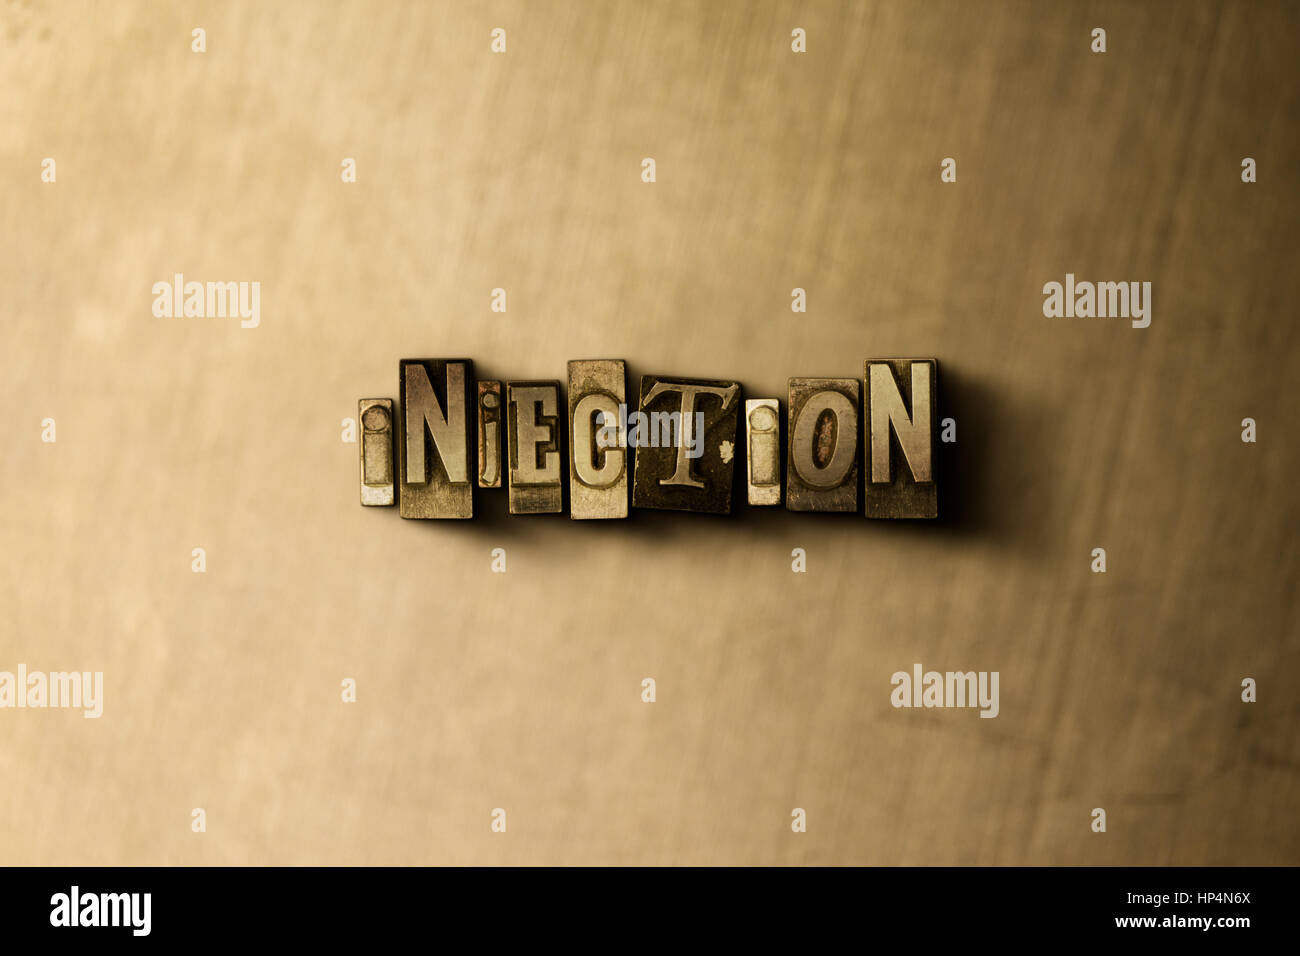 INJECTION - close-up of grungy vintage typeset word on metal backdrop. Royalty free stock illustration.  Can be - Stock Image